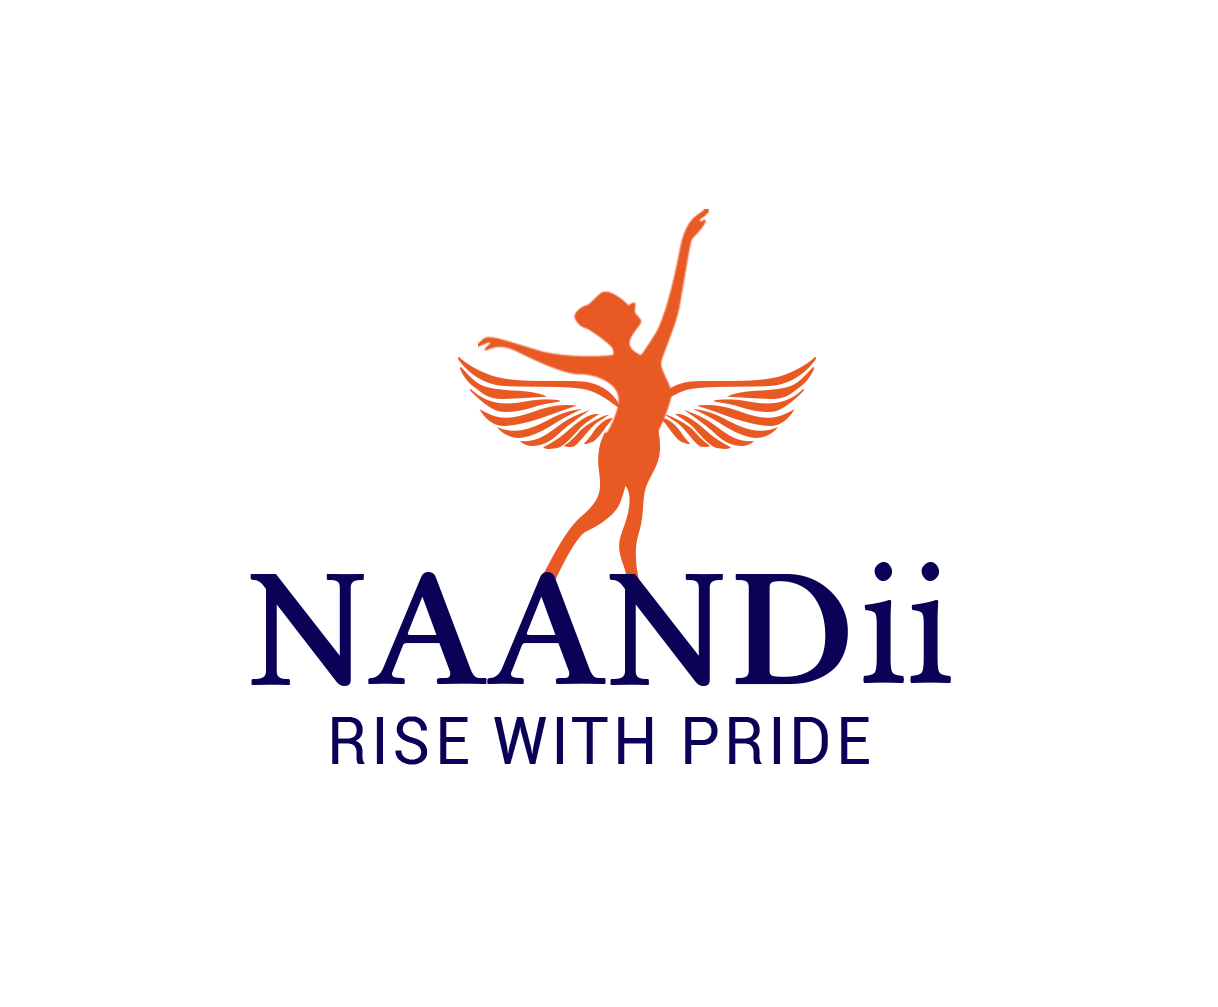 Naandii rise with pride